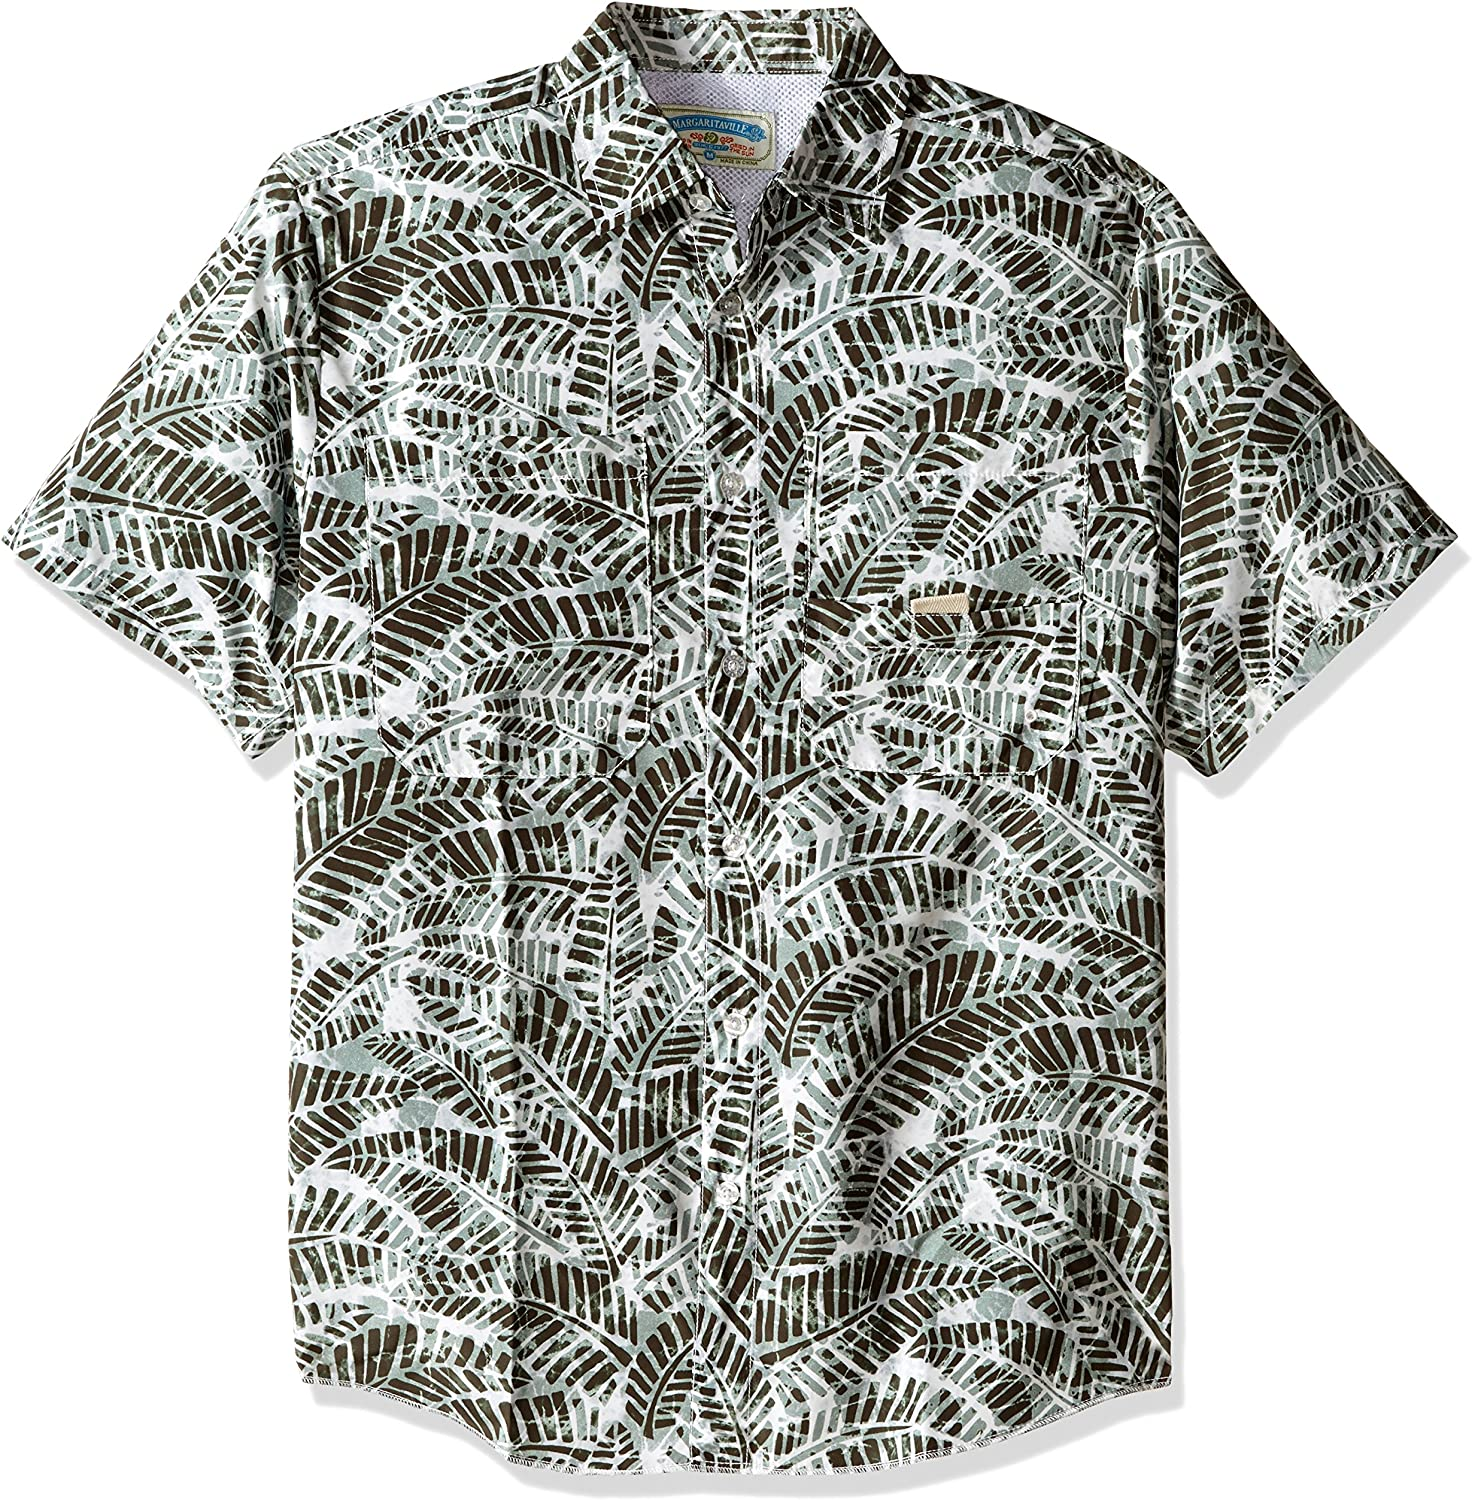 Margaritaville Mens Relaxed-Fit Short Sleeve Fishing Shirt